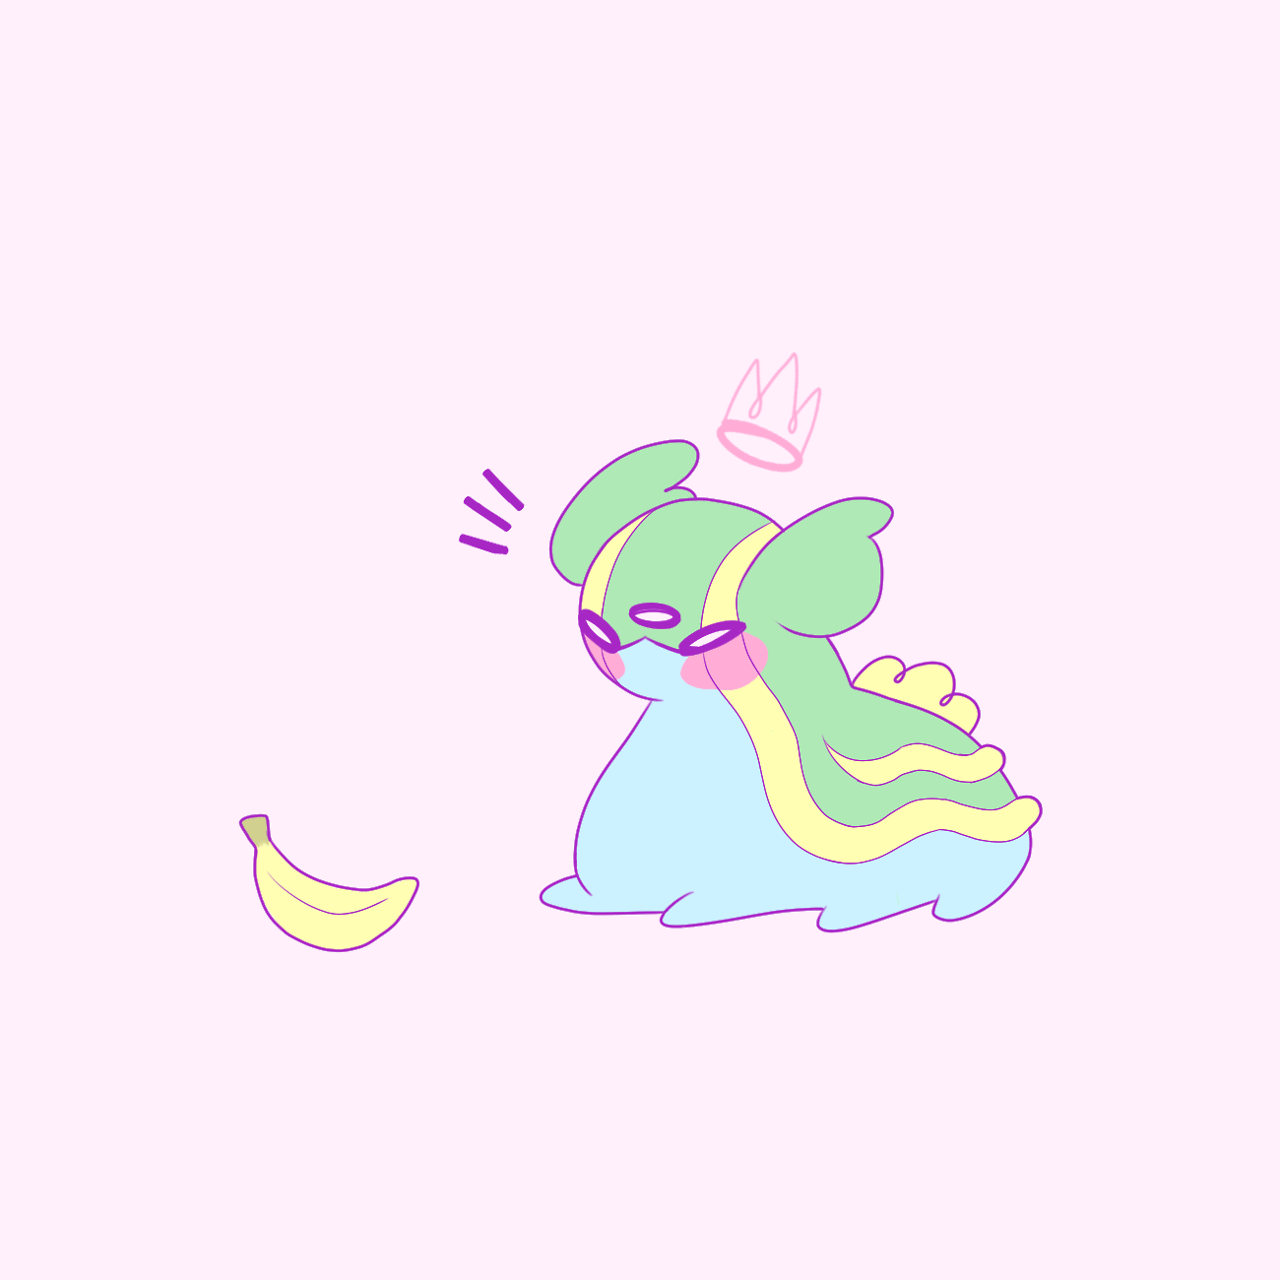 Serene Grace — Gastrodon no like the banana